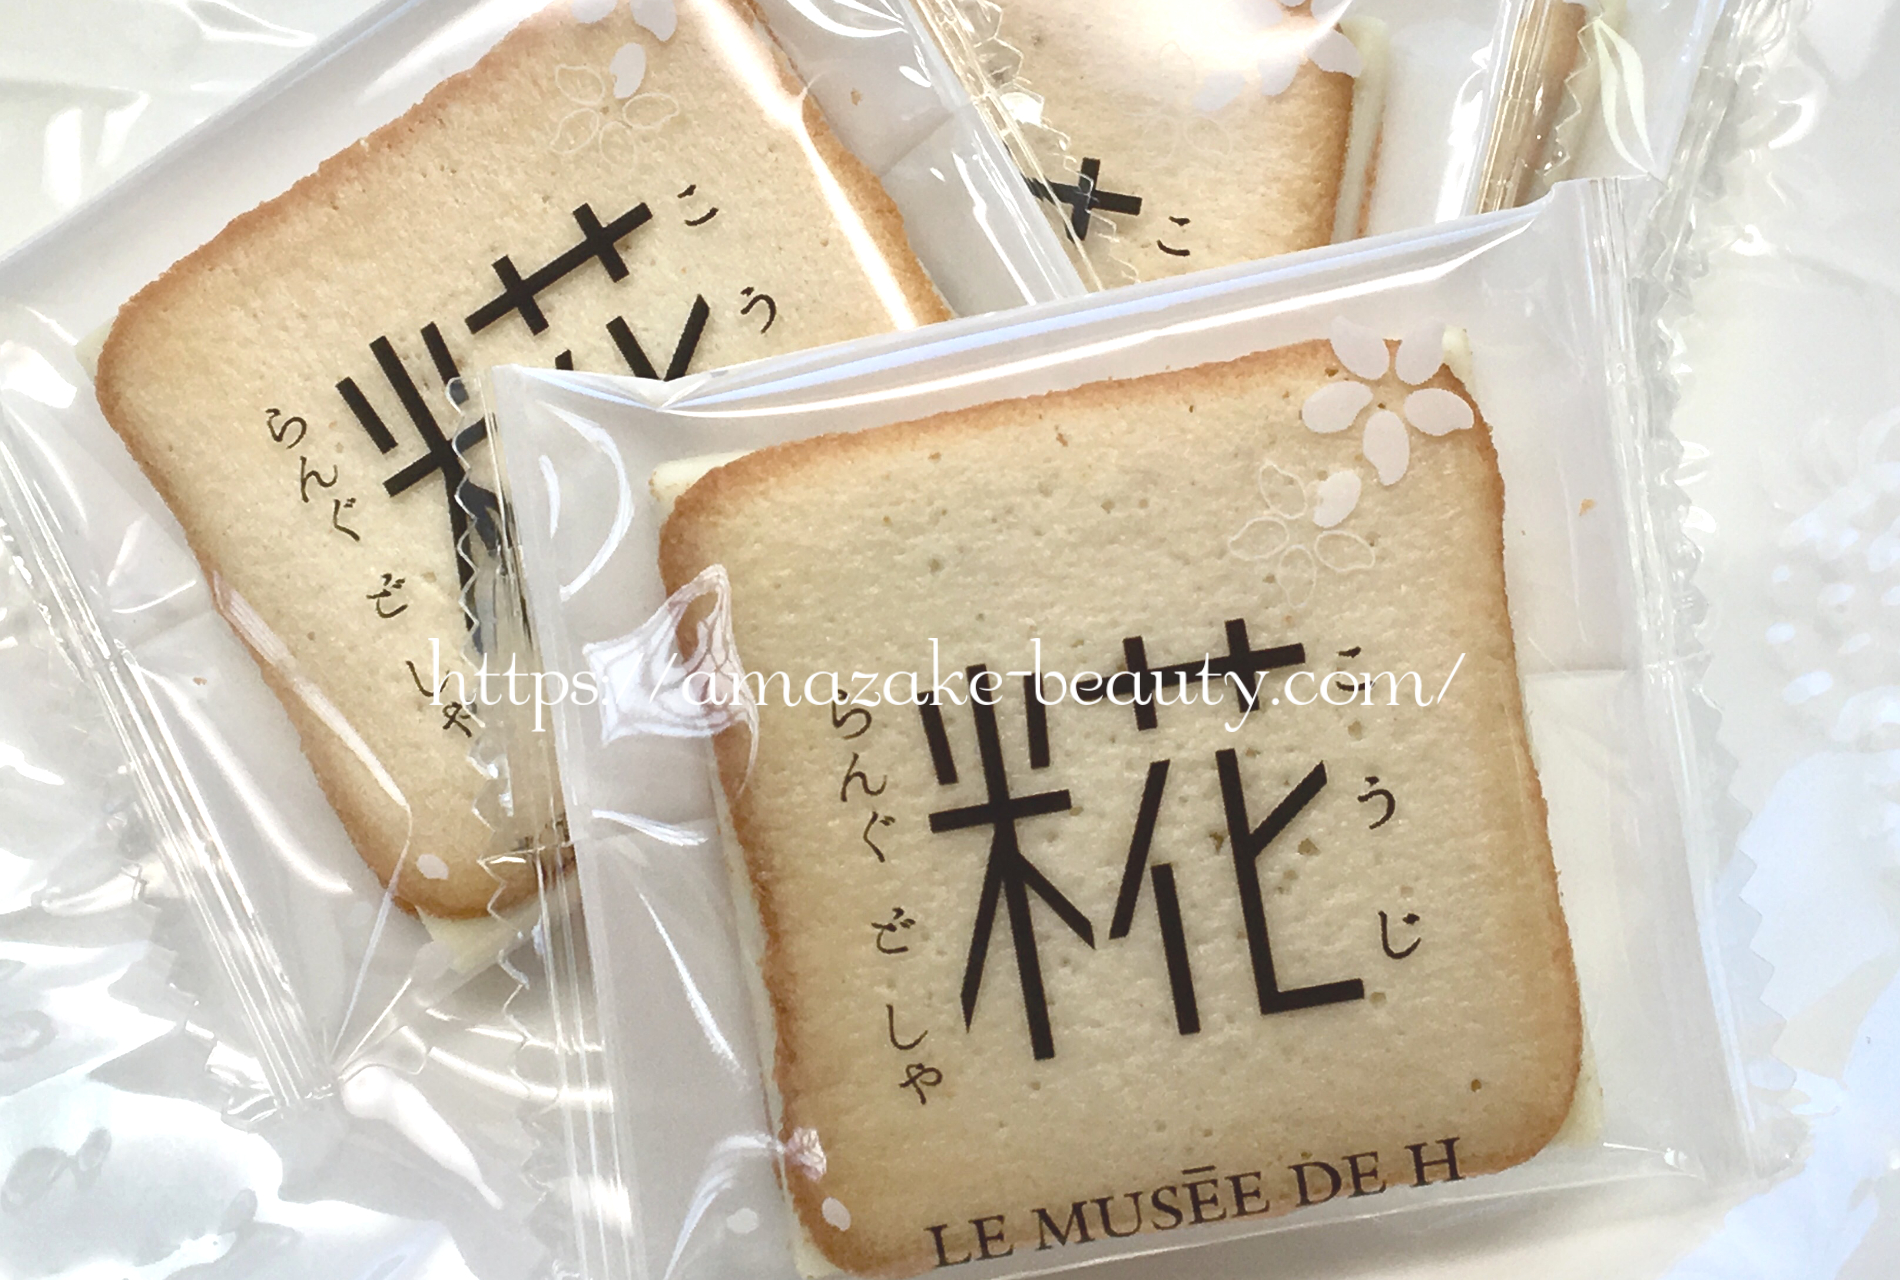 [amazake sweets]ru myuze do asshu[koji rangudosha](review)